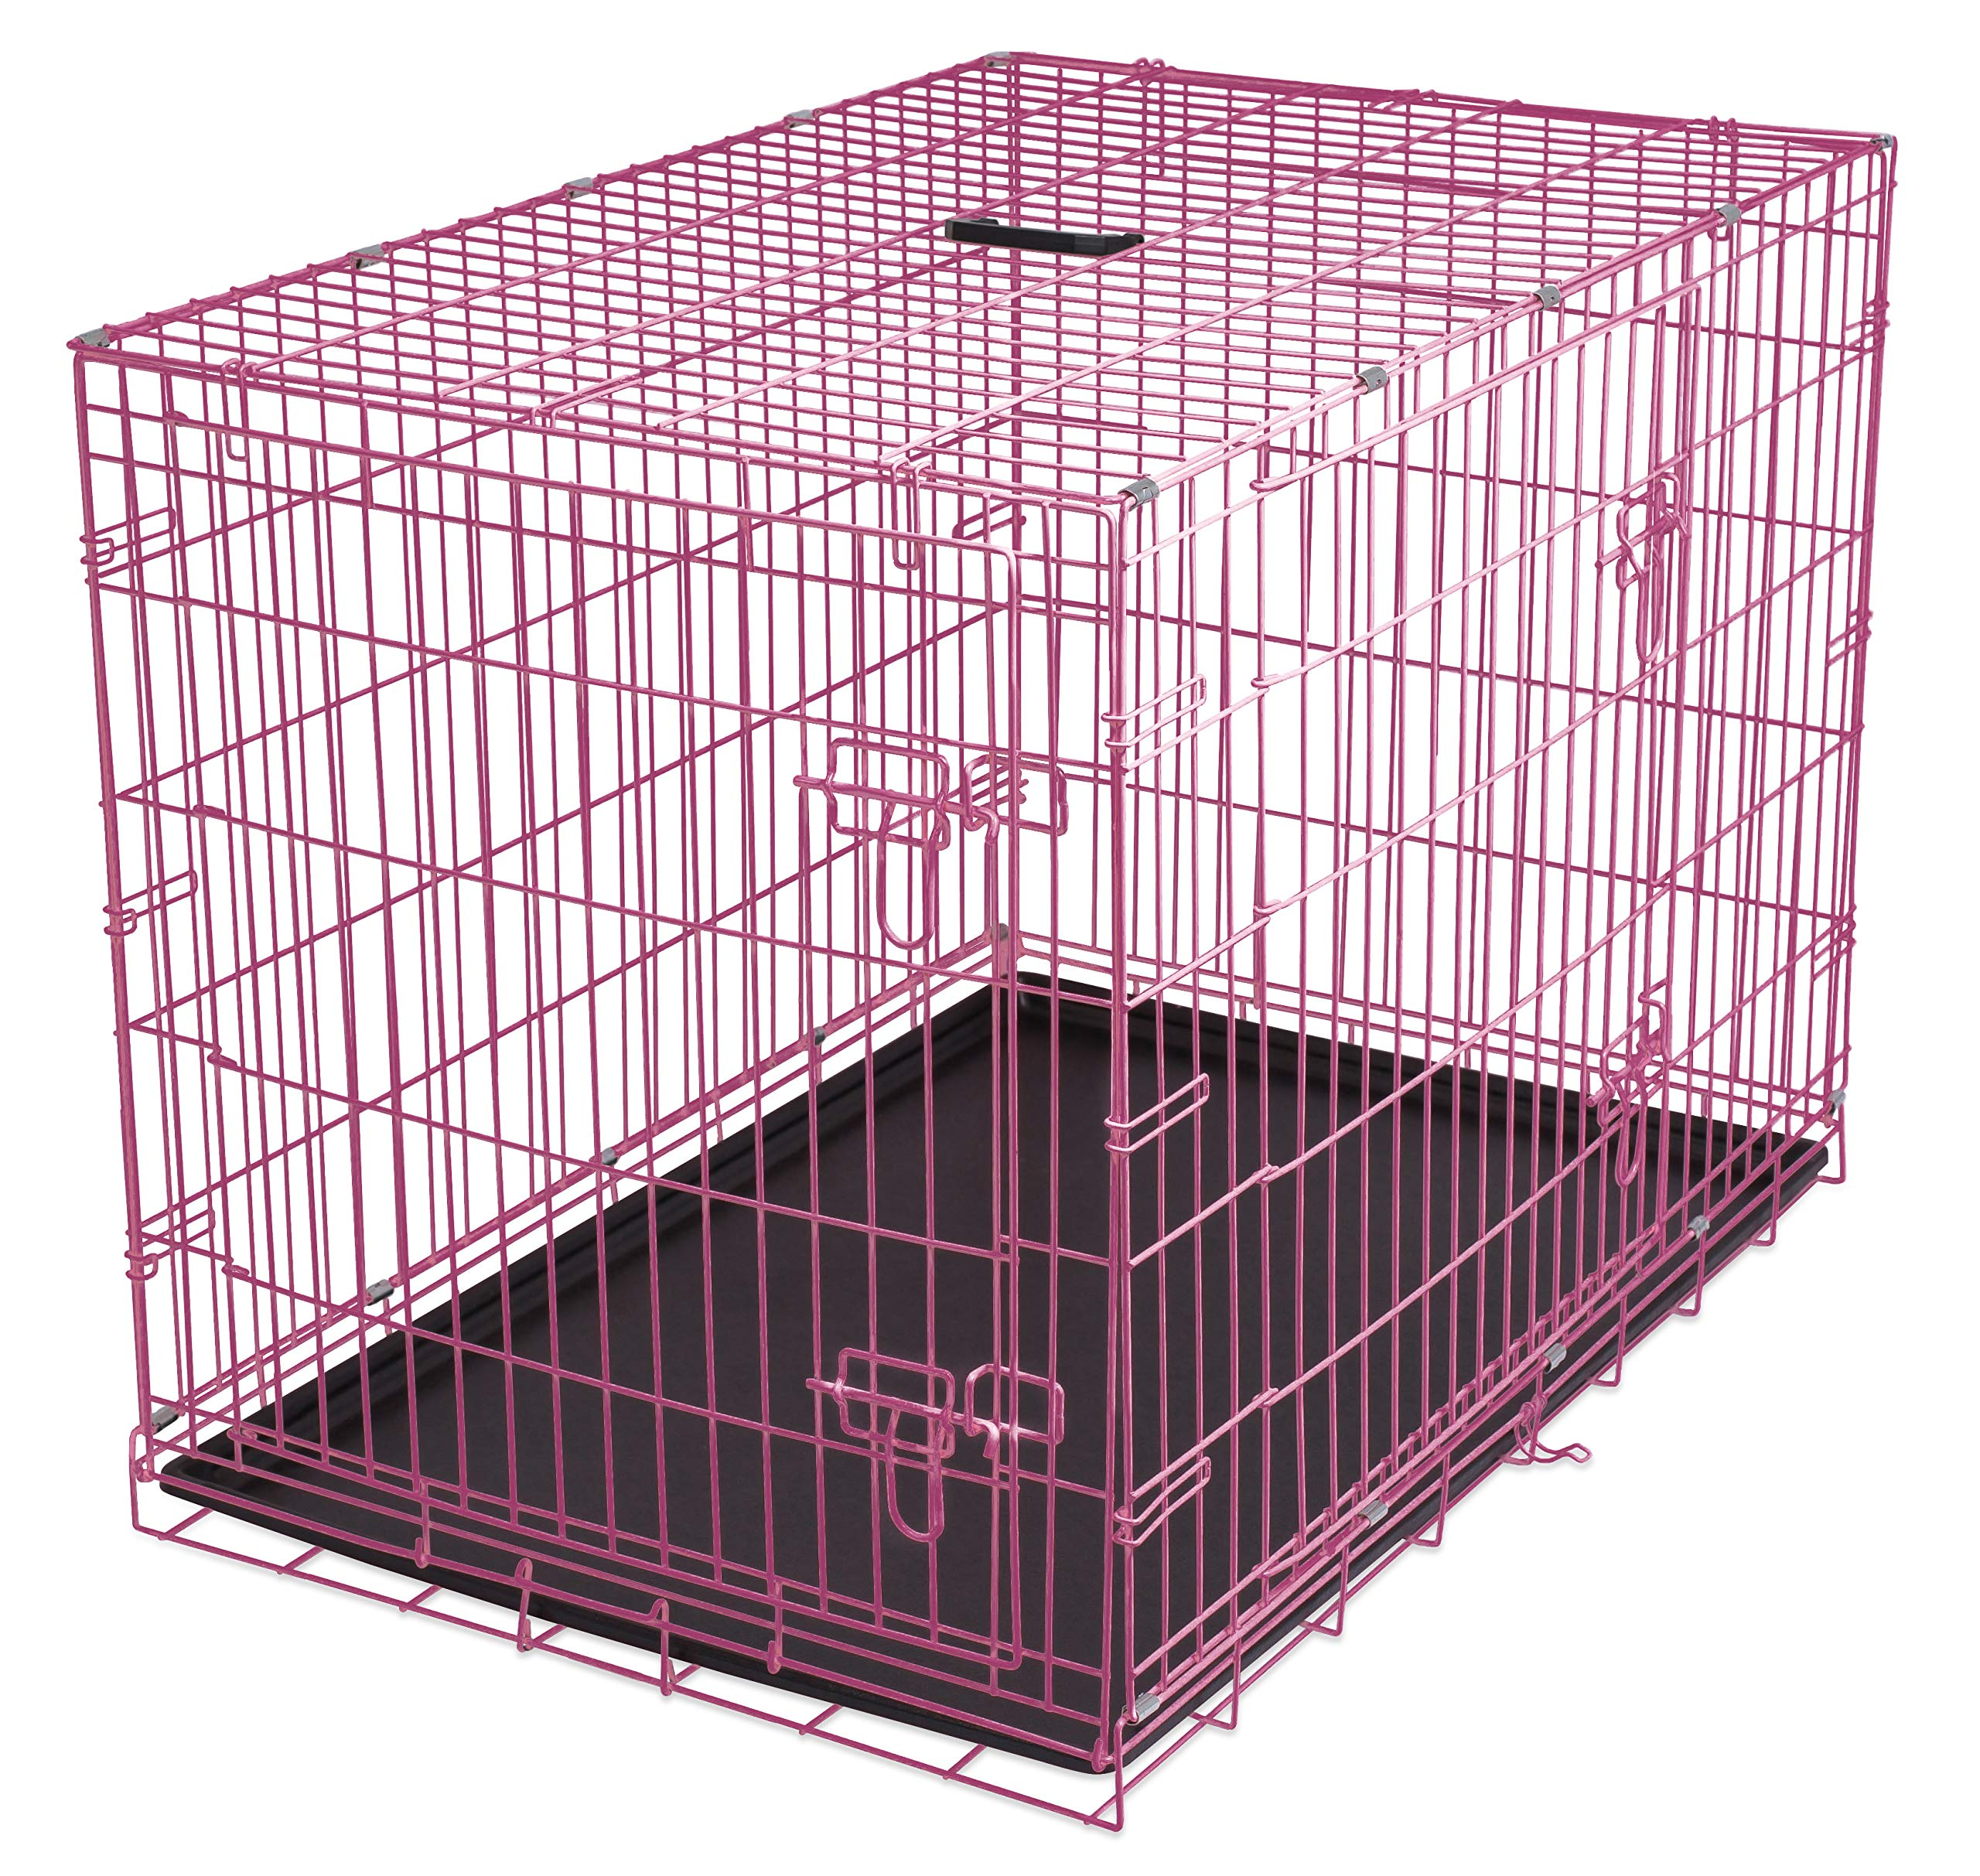 Internet's Best Double Door Steel Crates Collapsible and Foldable Wire Dog Kennel, 36 Inch (Medium), Pink by Internet's Best